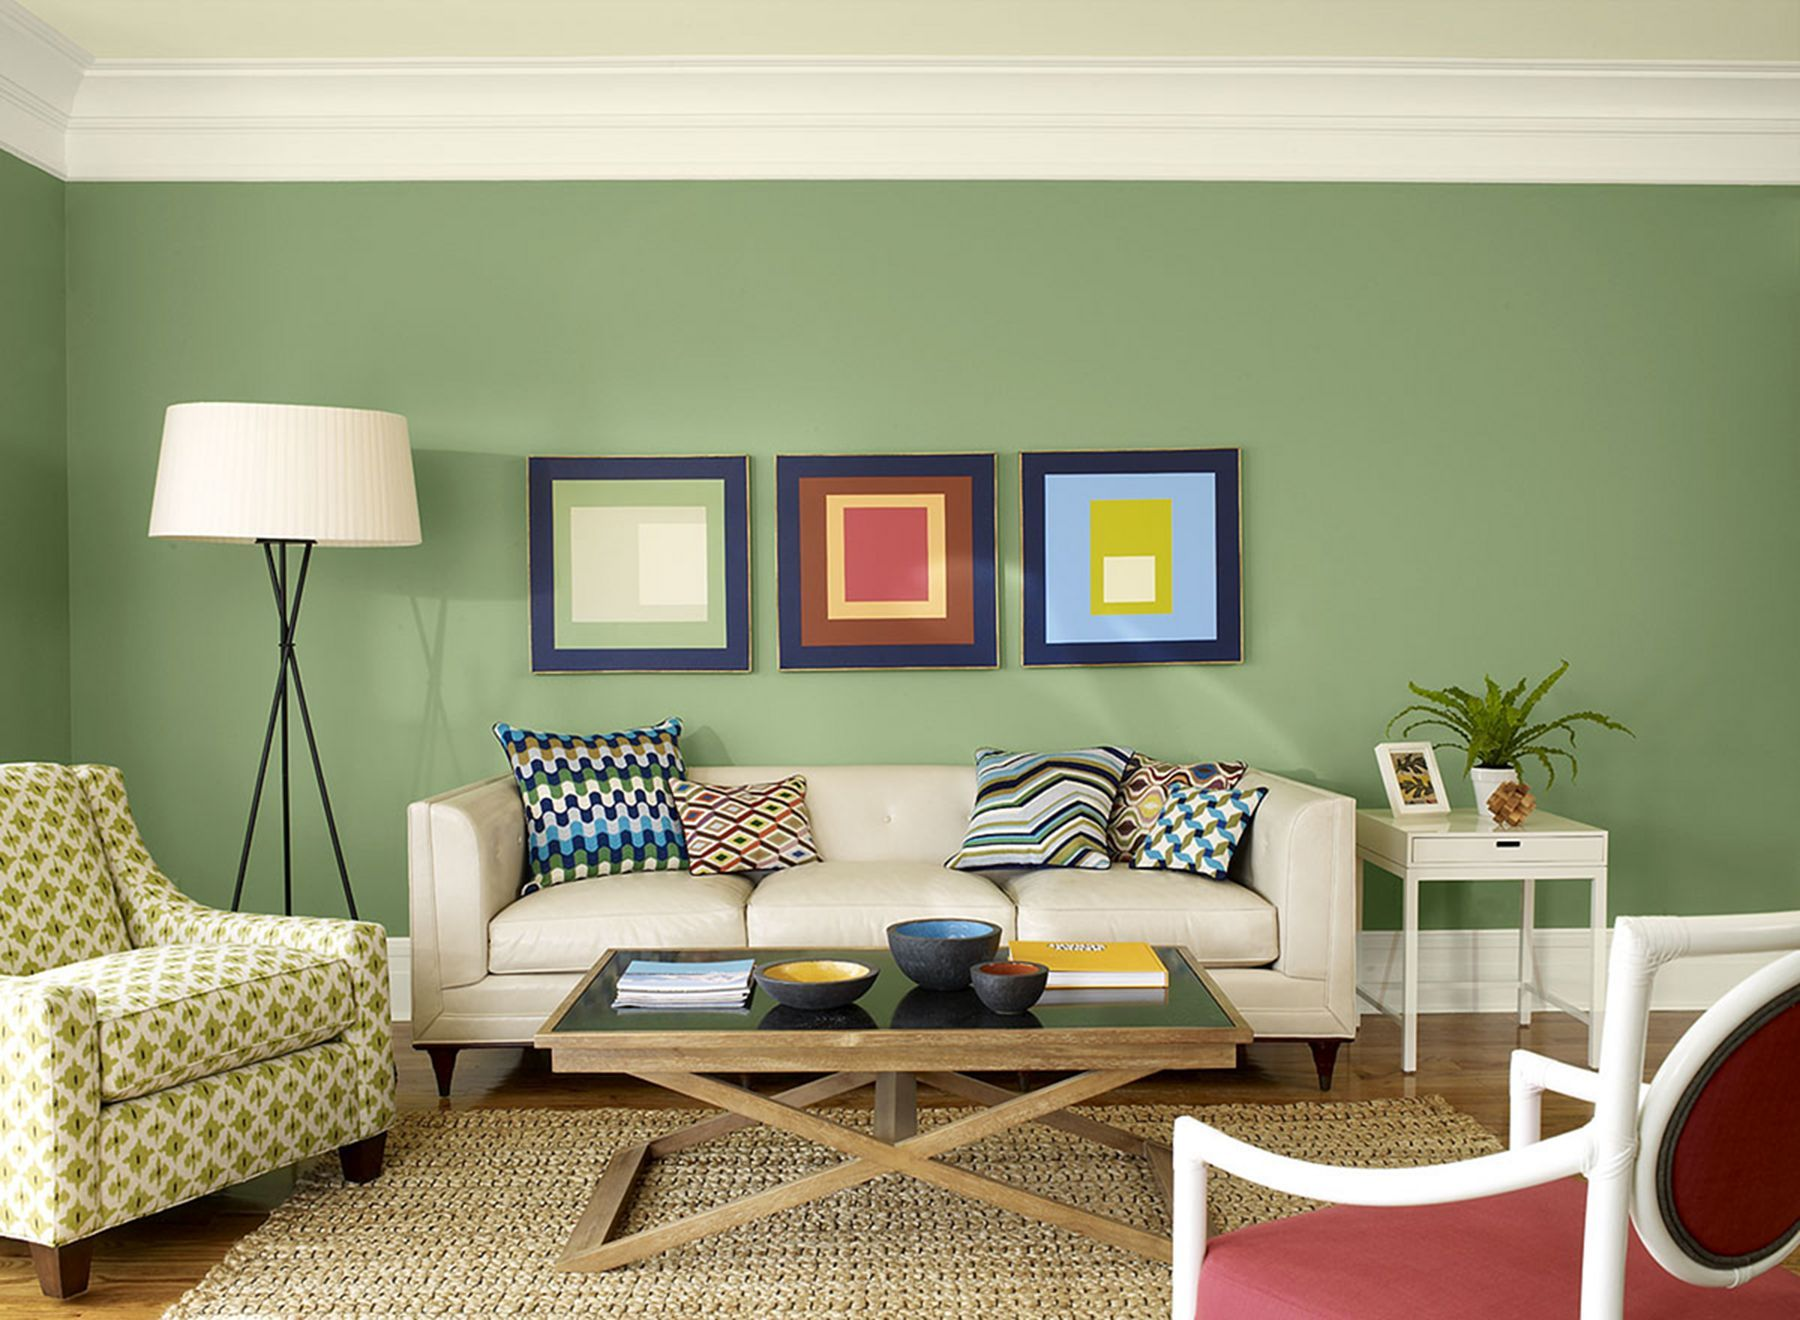 15 Beautiful And Attractive Living Room Color Ideas To Inspire You Livingroomcolor Living Room Color Schemes Living Room Green Living Room Color Combination Room color fashionable inspiration